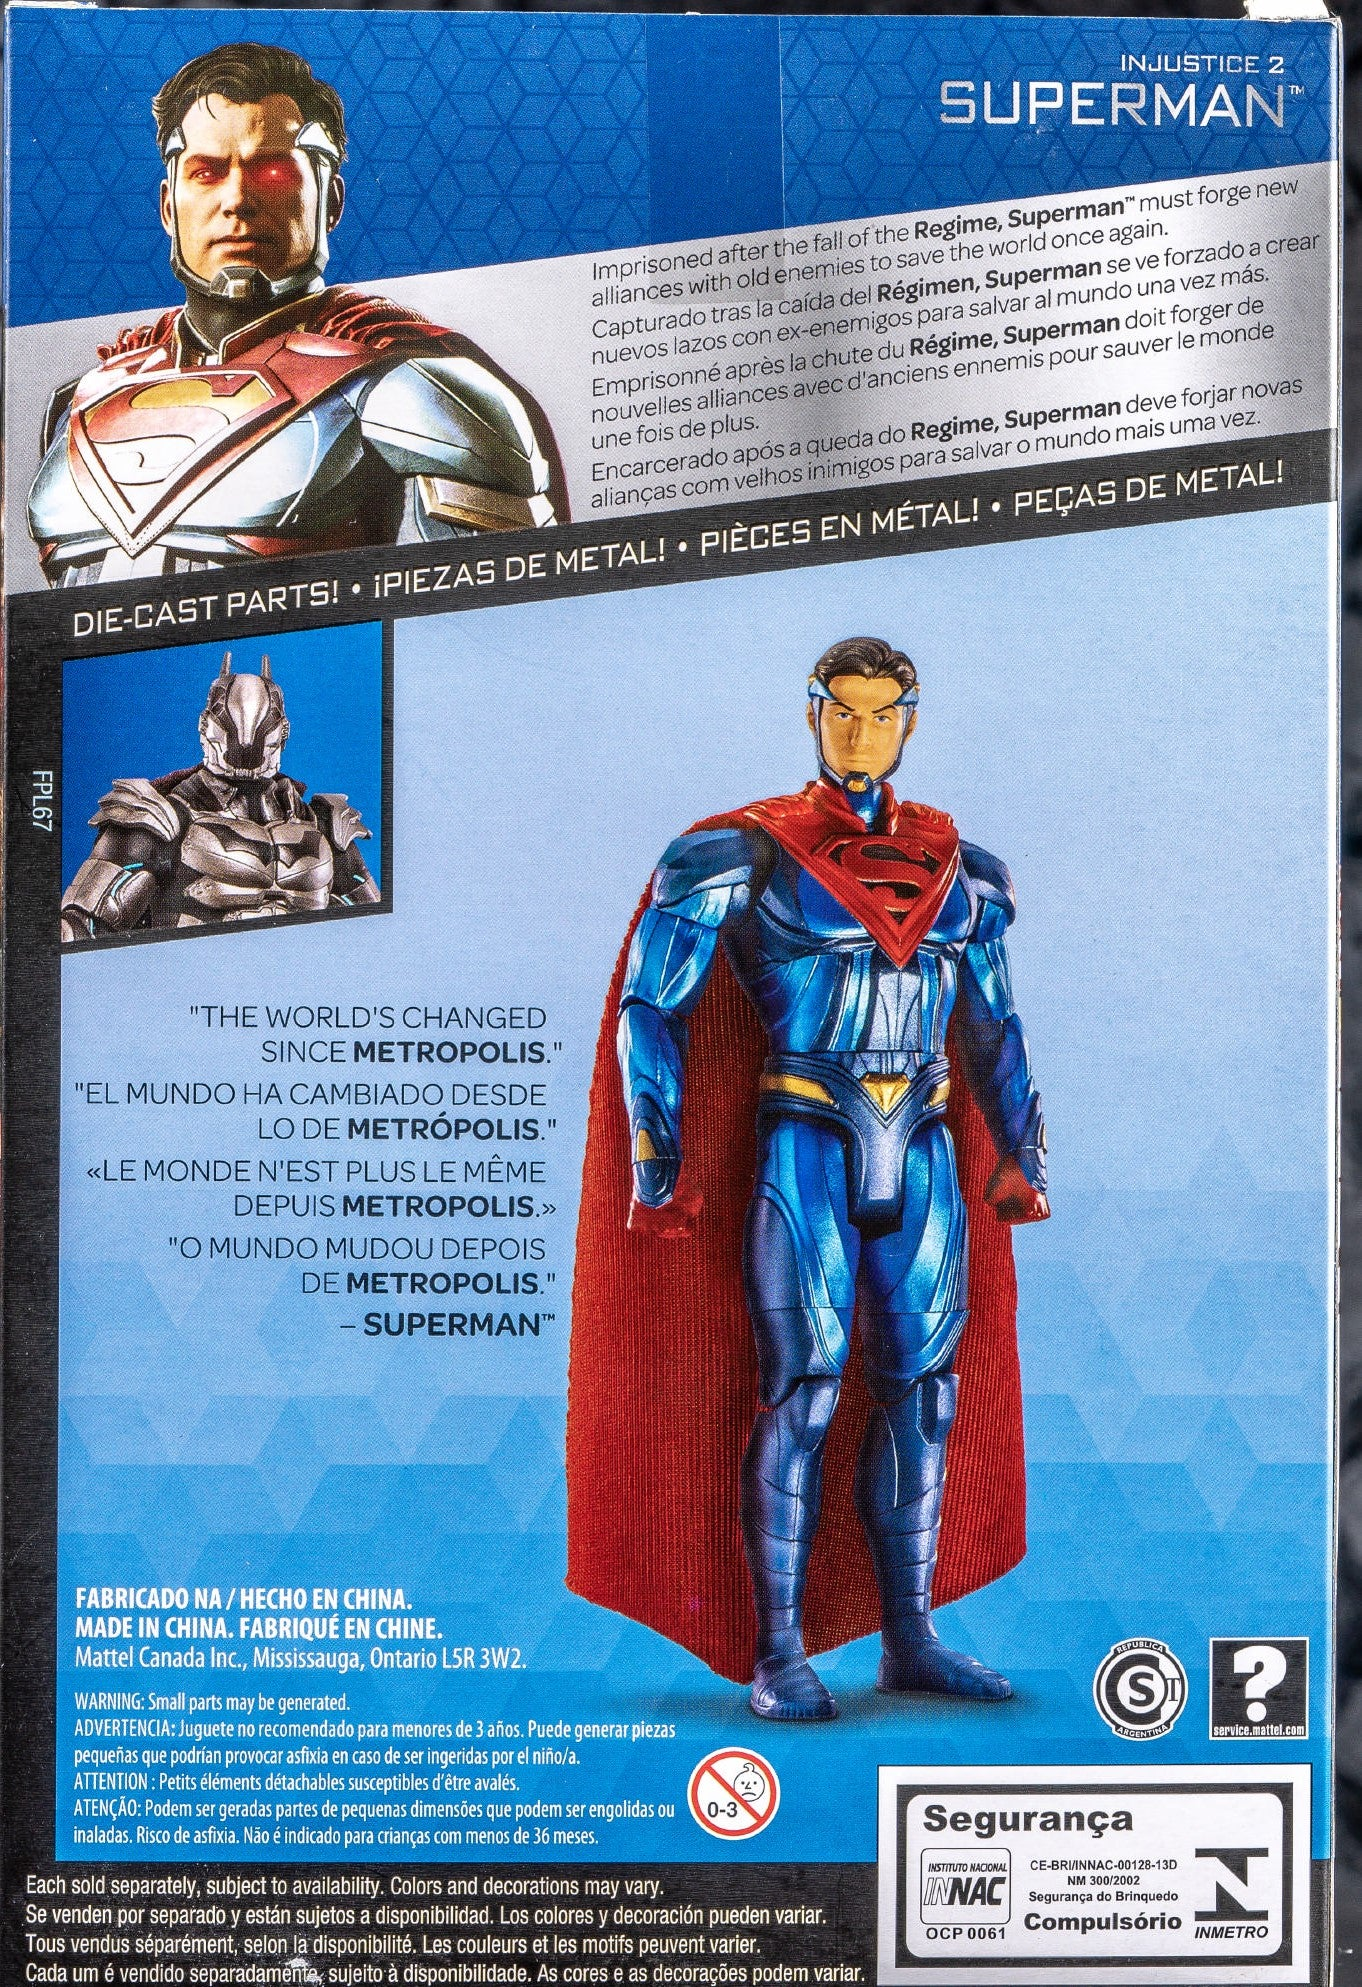 Mattel - Platinum Collection - DC Comics Multiverse - Injustice 2 - Superman 6-Inch Metal Action Figure (FPL68)